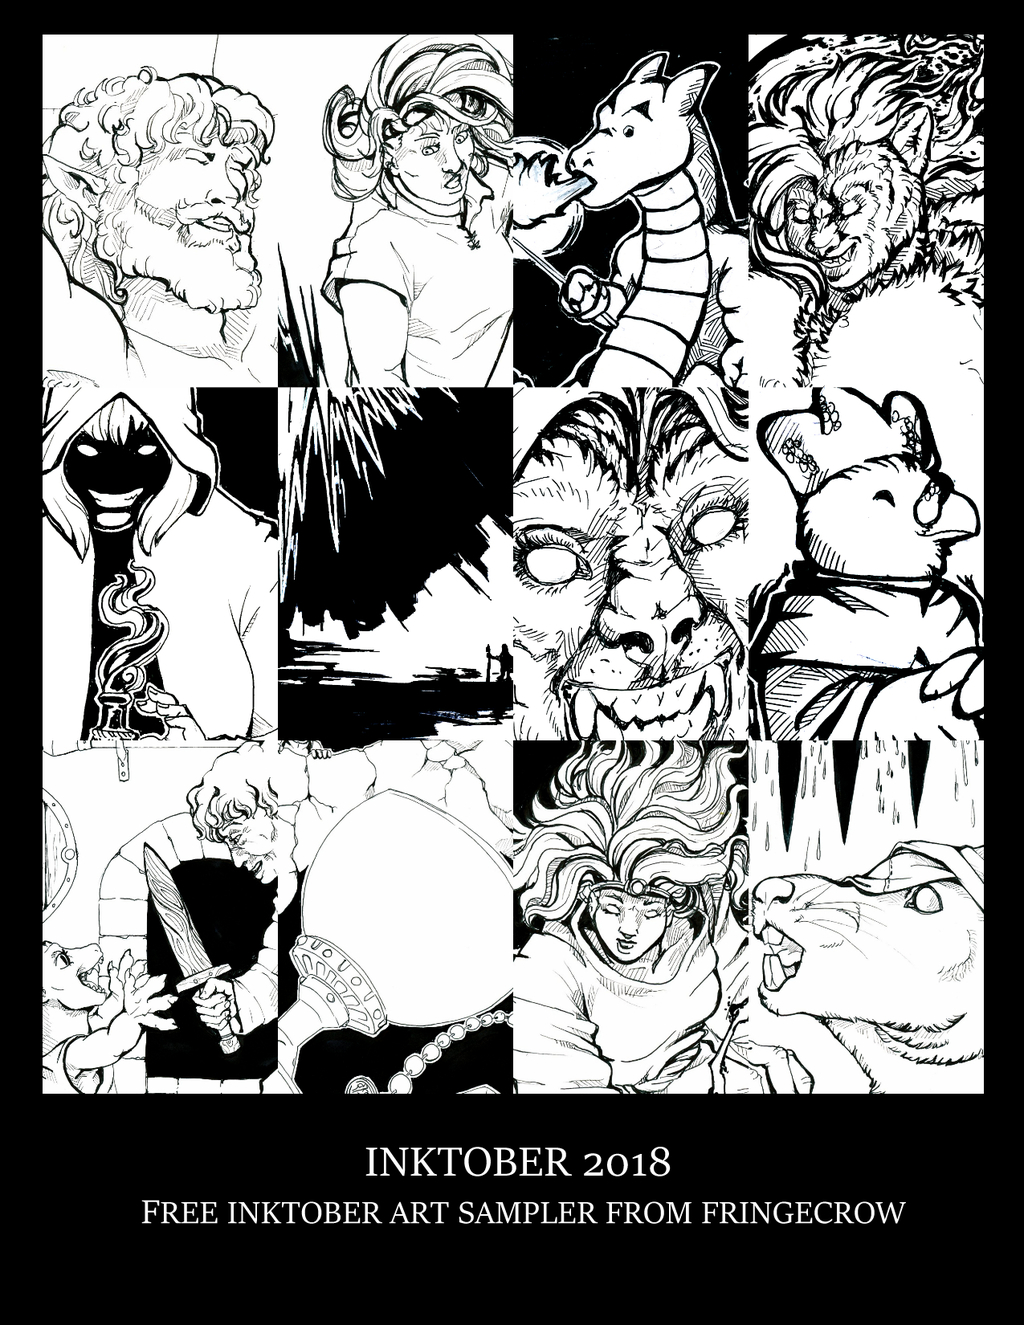 Featured image: [Itch]-Inktober 2018 PWYW Art collection